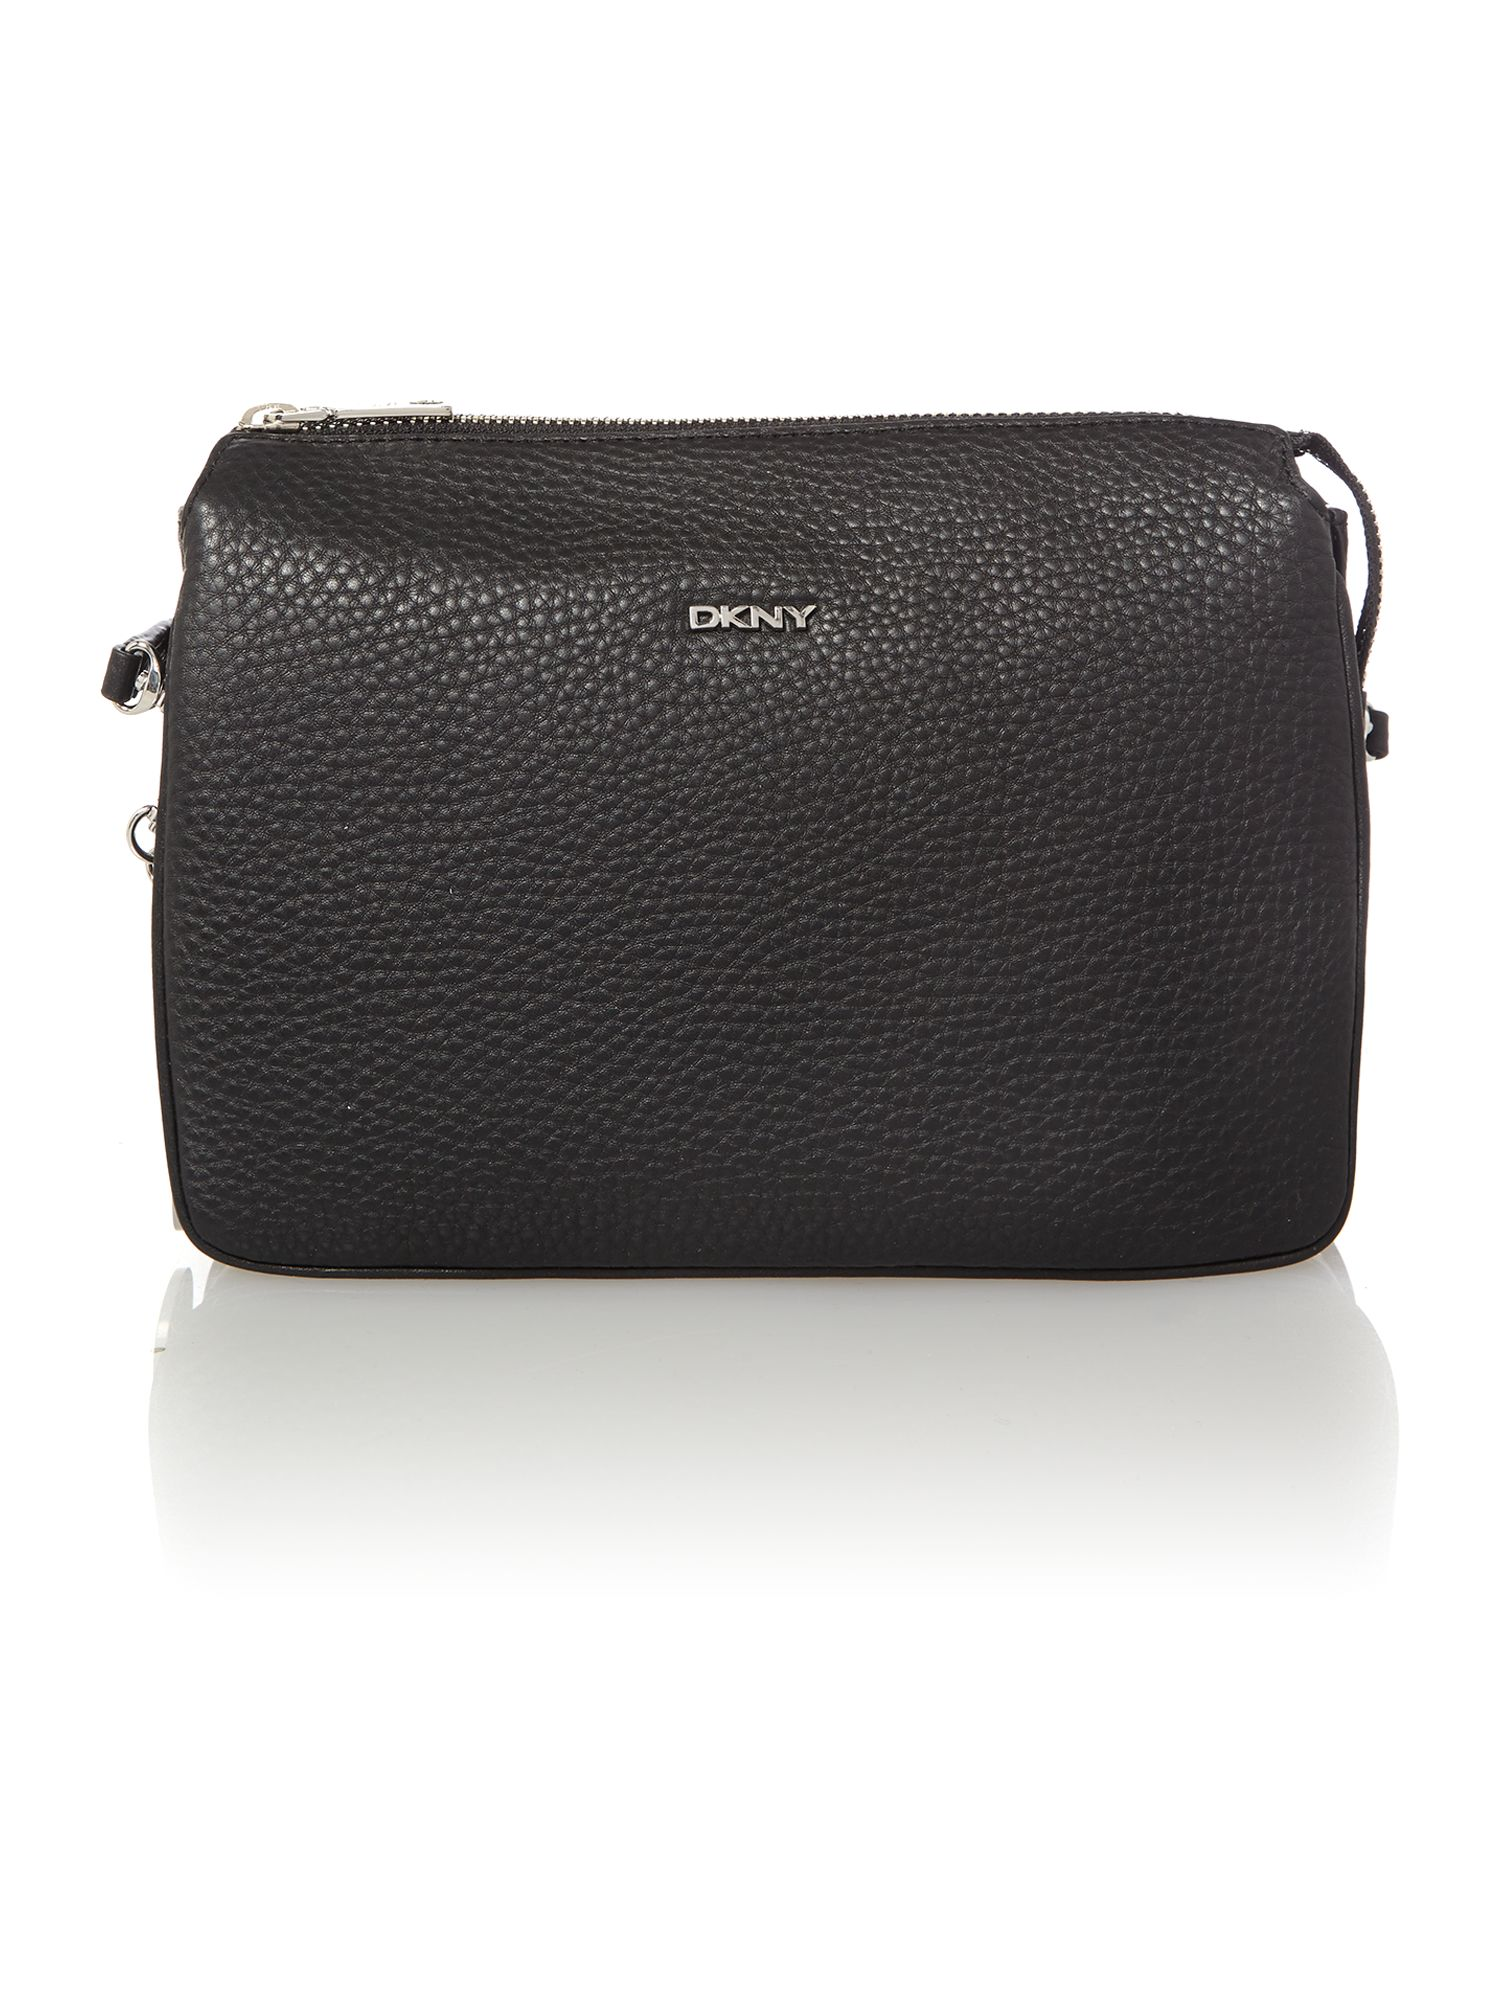 Tribeca black crossbody bag